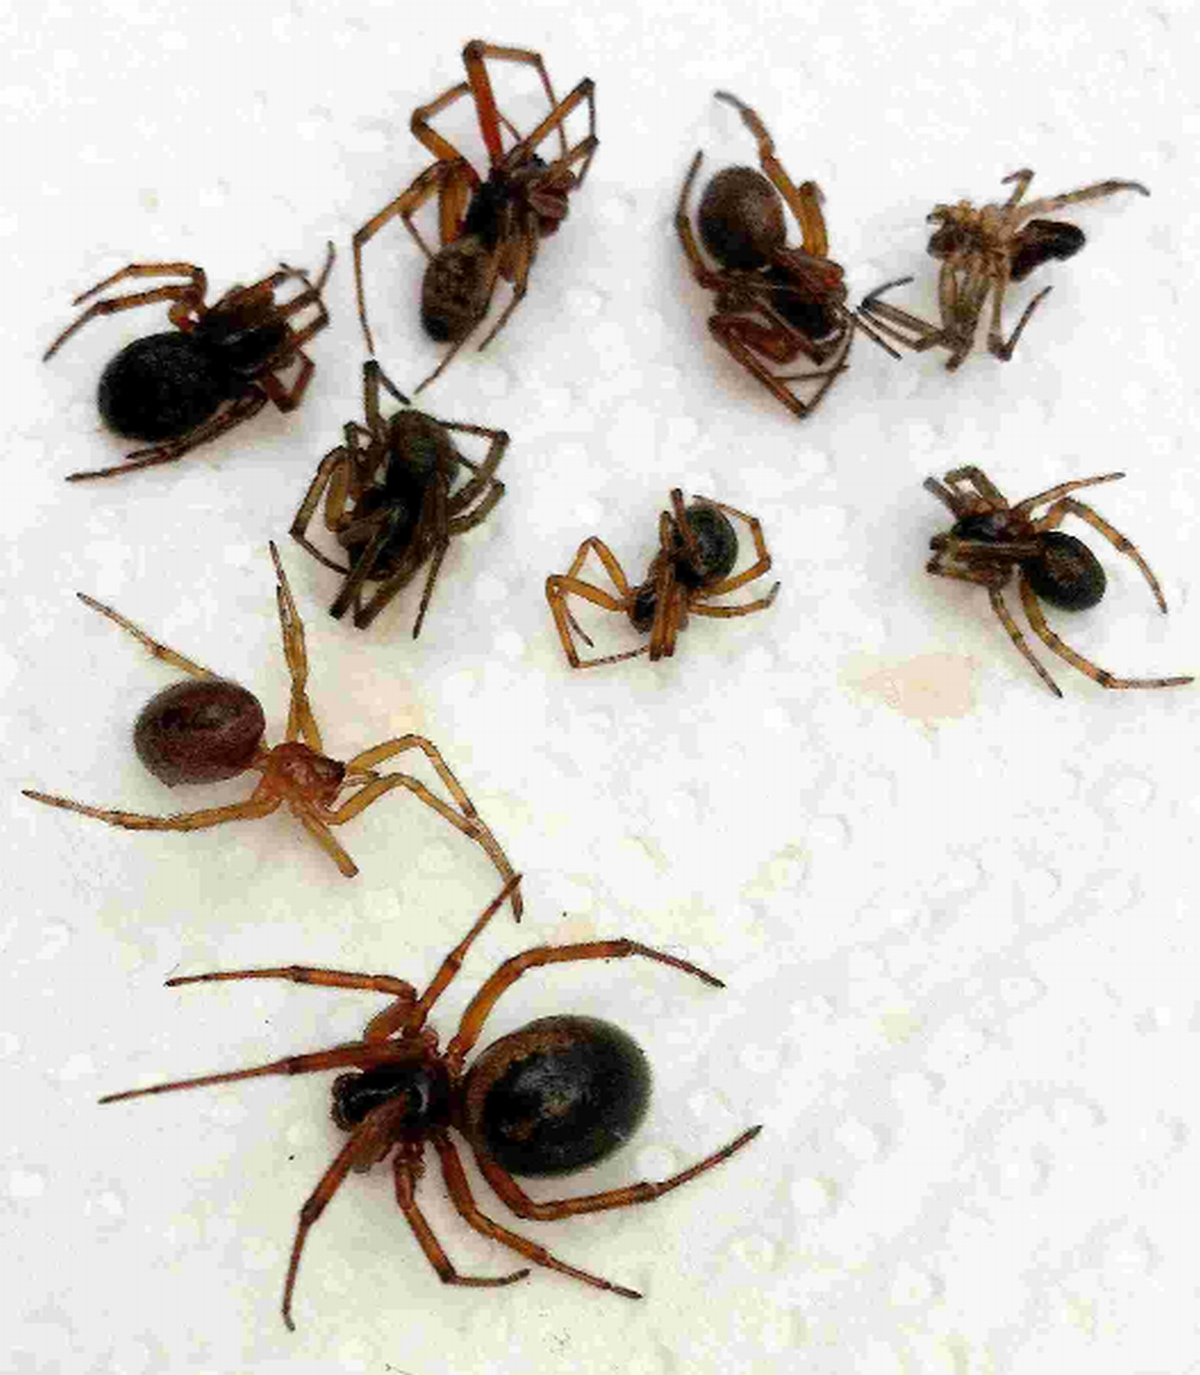 False widow spiders